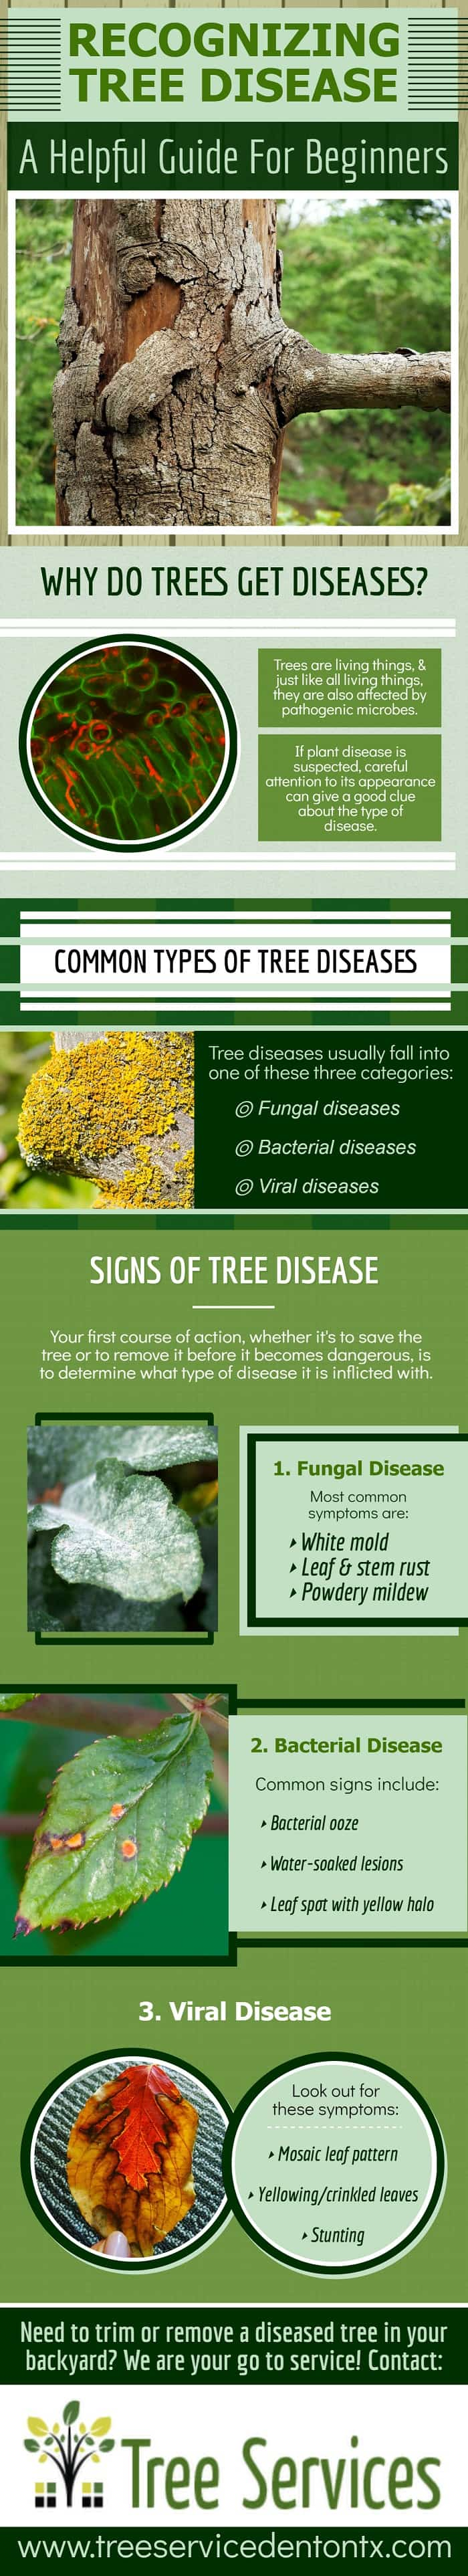 Recognizing Tree Disease - A Helpful Guide for Beginners